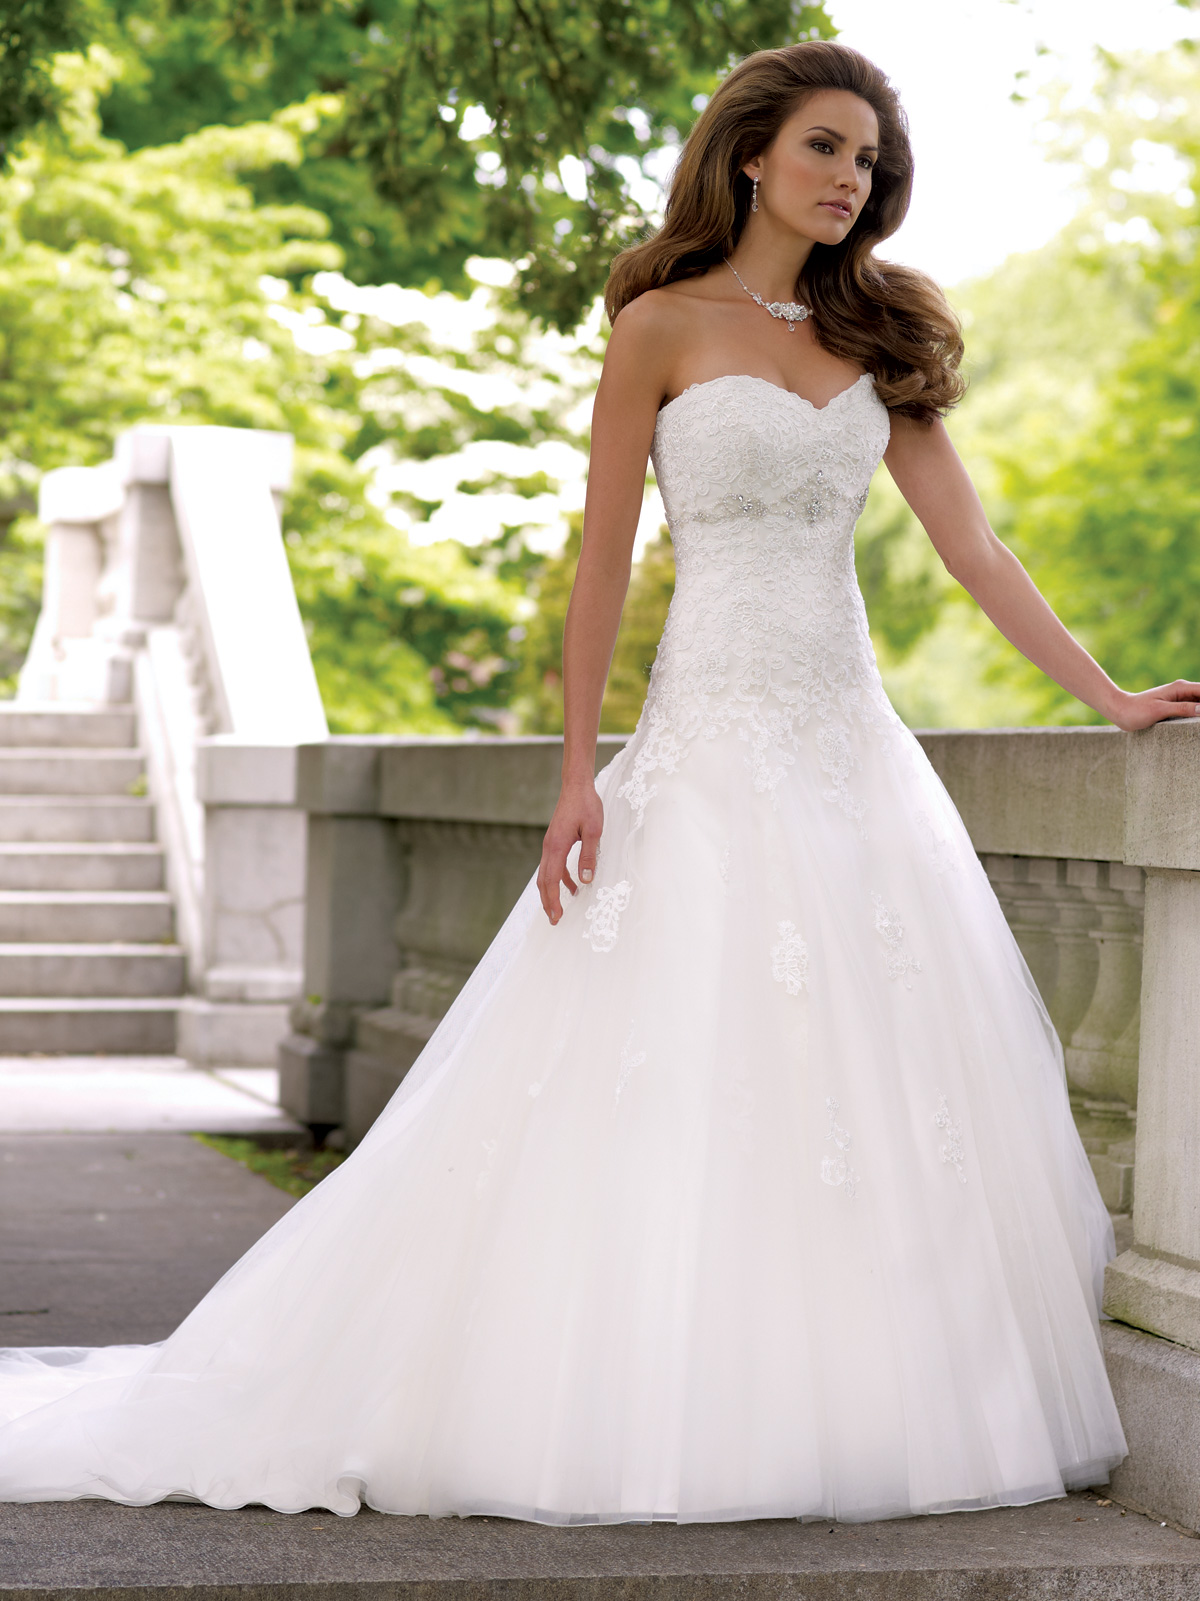 david tutera disney wedding dresses photo - 1